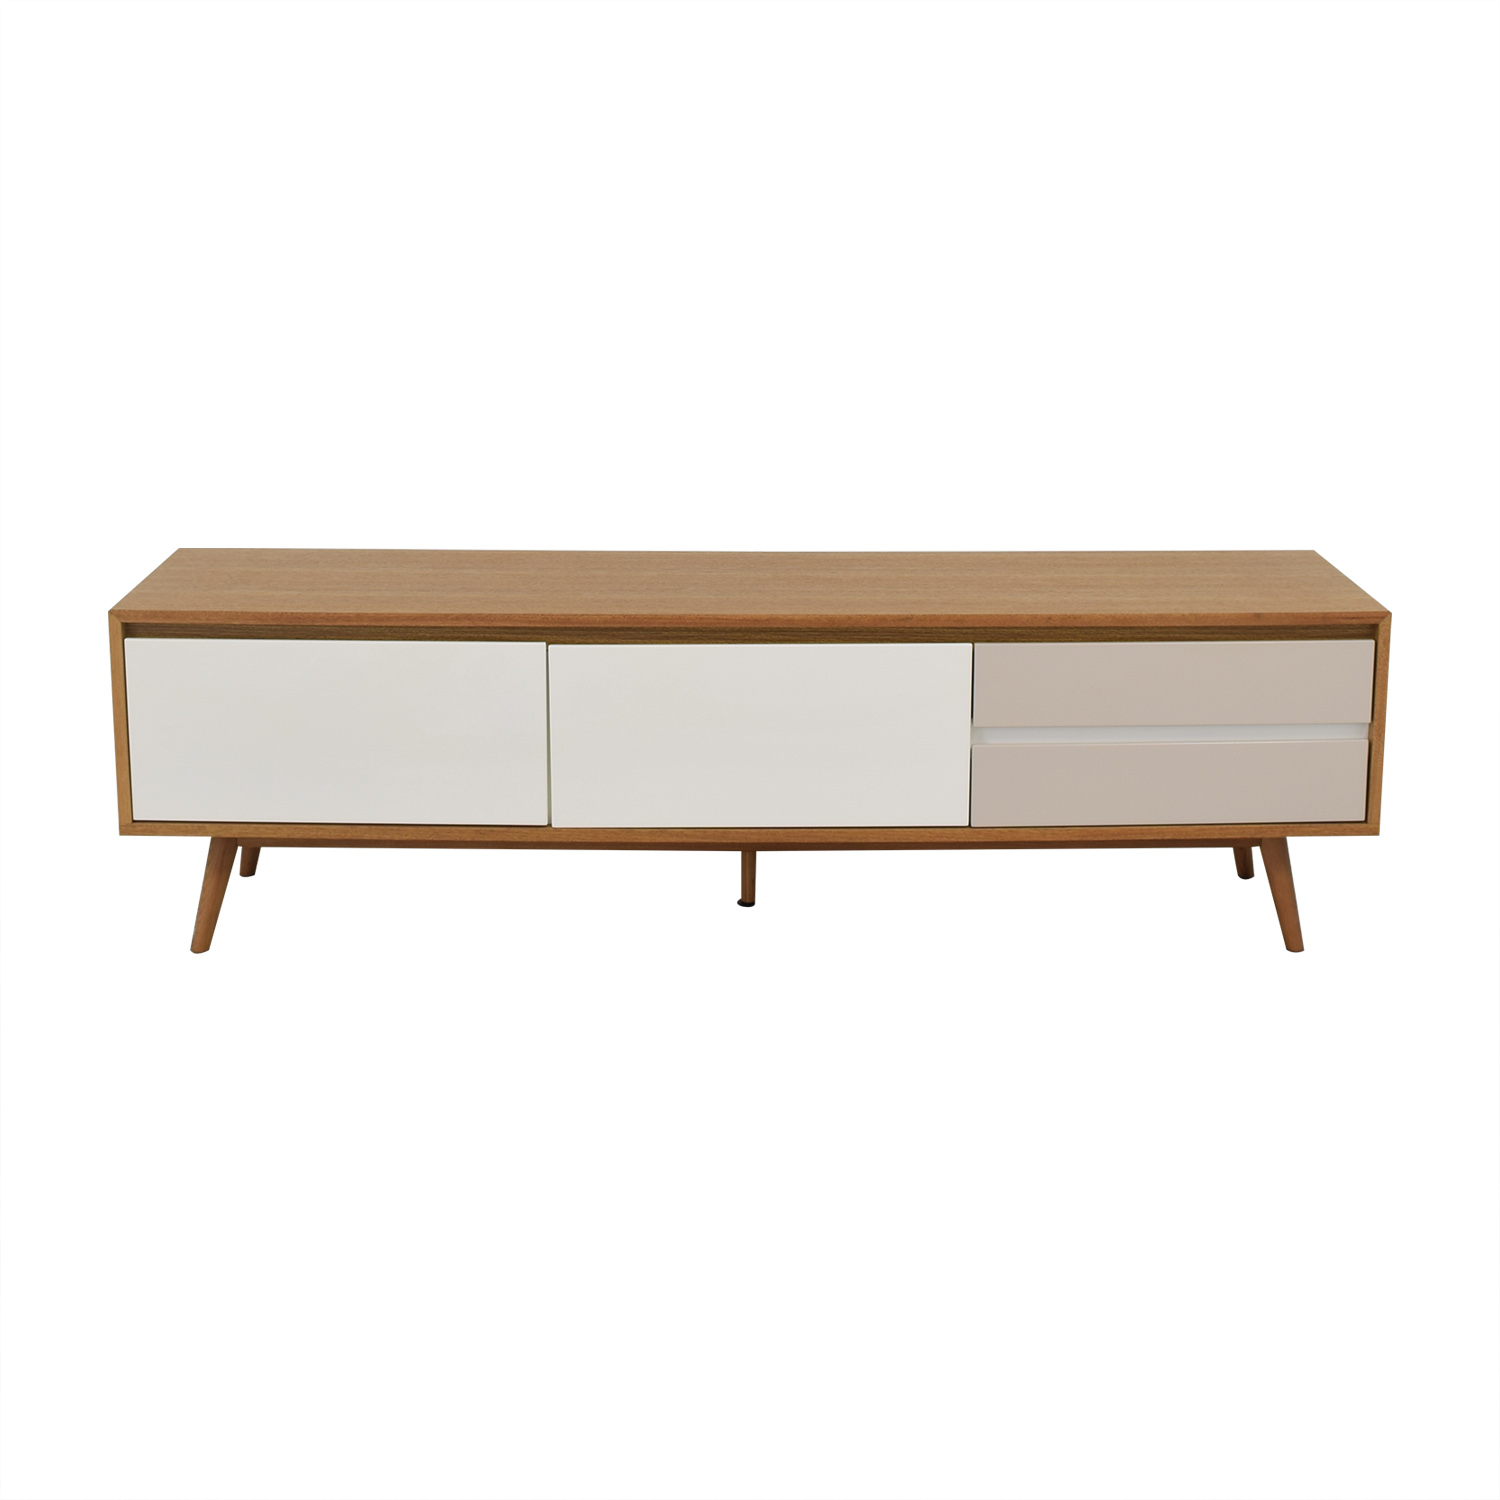 Rove Concepts Lucas TV Stand sale